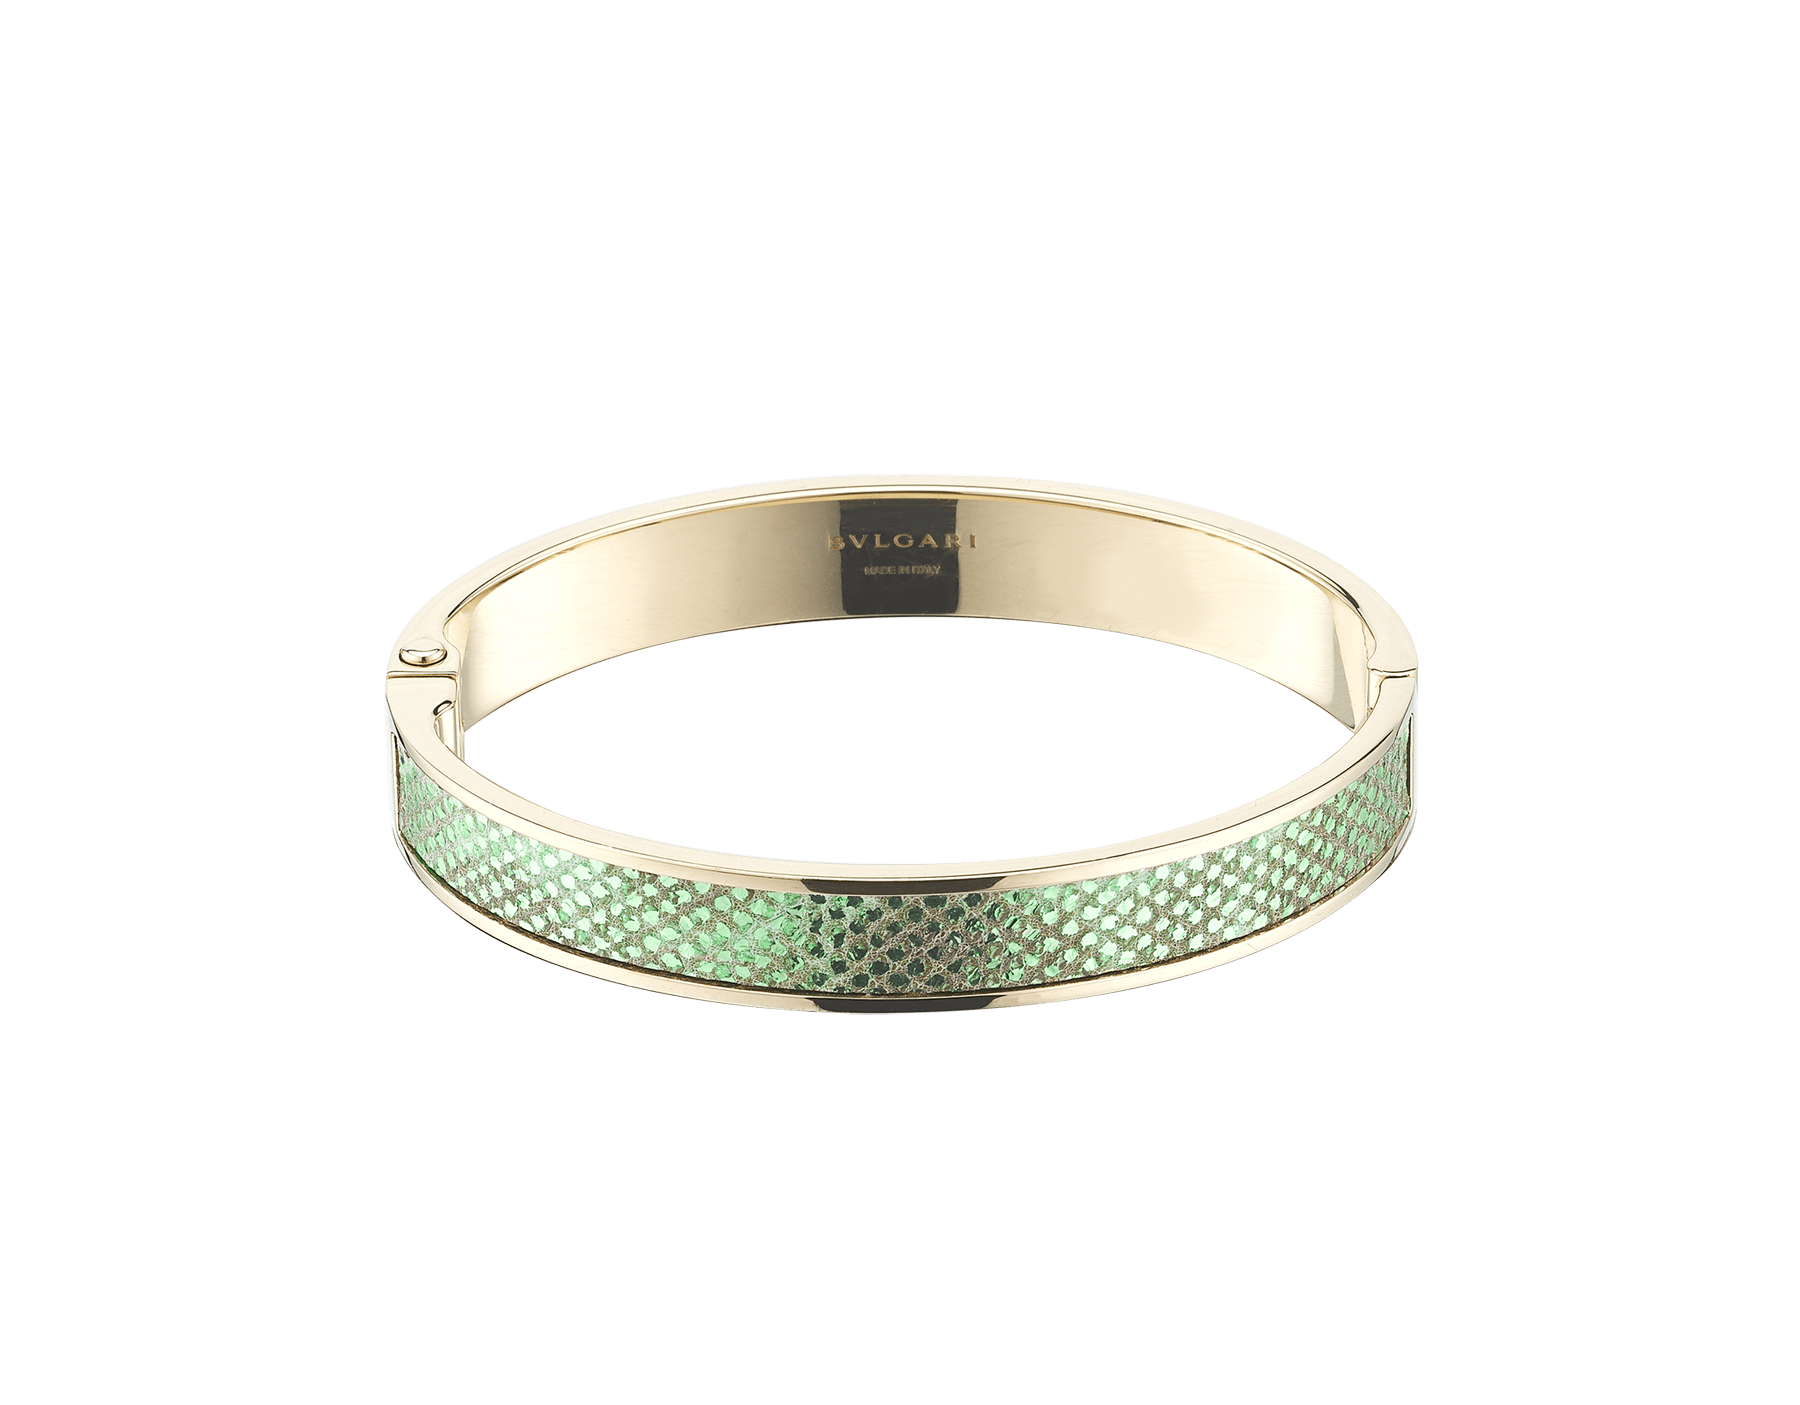 """BVLGARI BVLGARI"" new bangle bracelet in light gold with a mint metallic karung skin insert and a BVLGARI logo hinge closure. Logo engraving in the inner part. HINGEBBBRACLT-MK-M image 1"